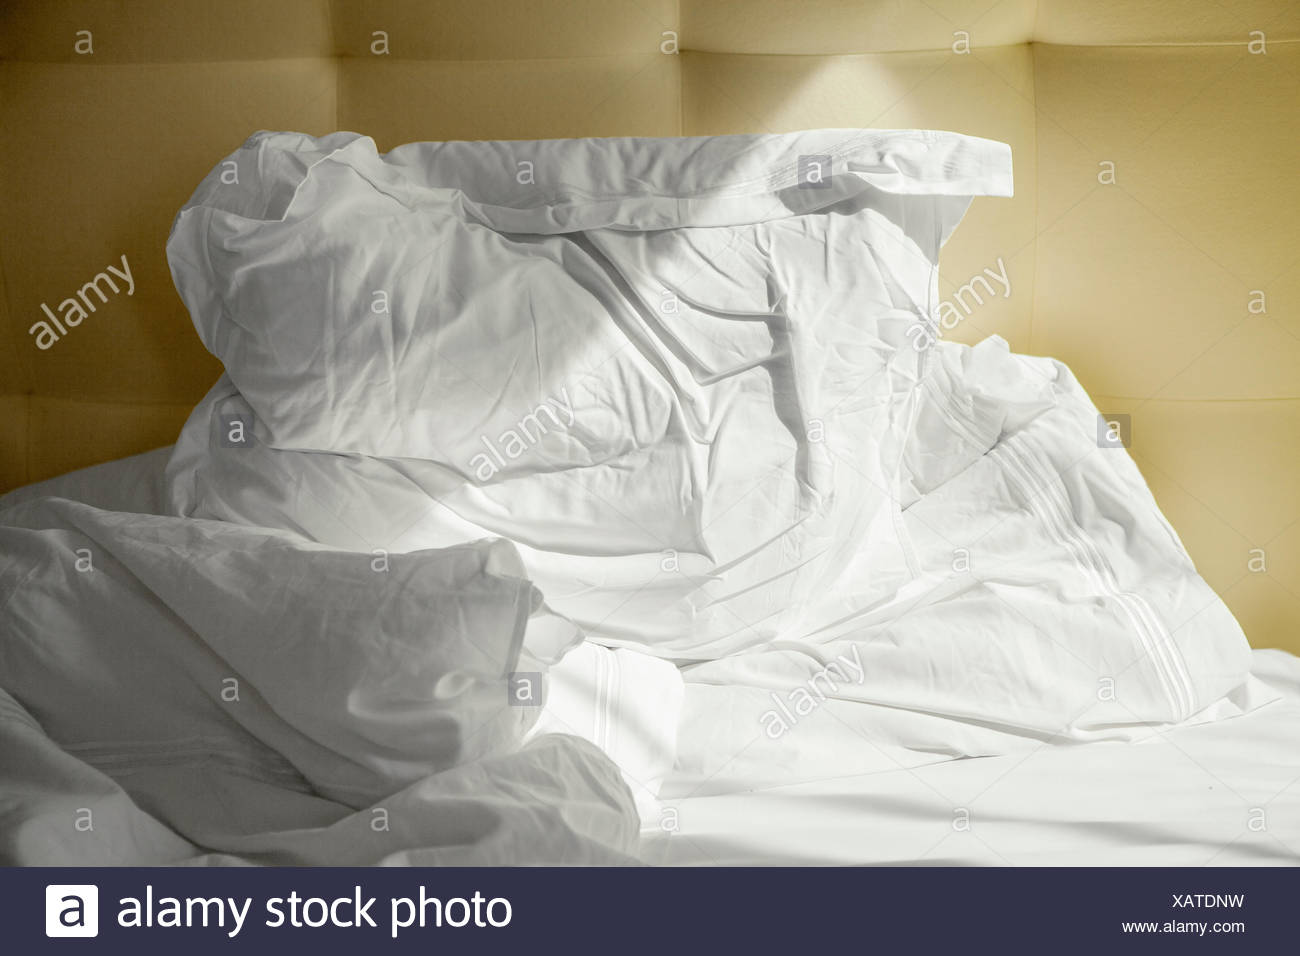 Messy bed - Stock Image